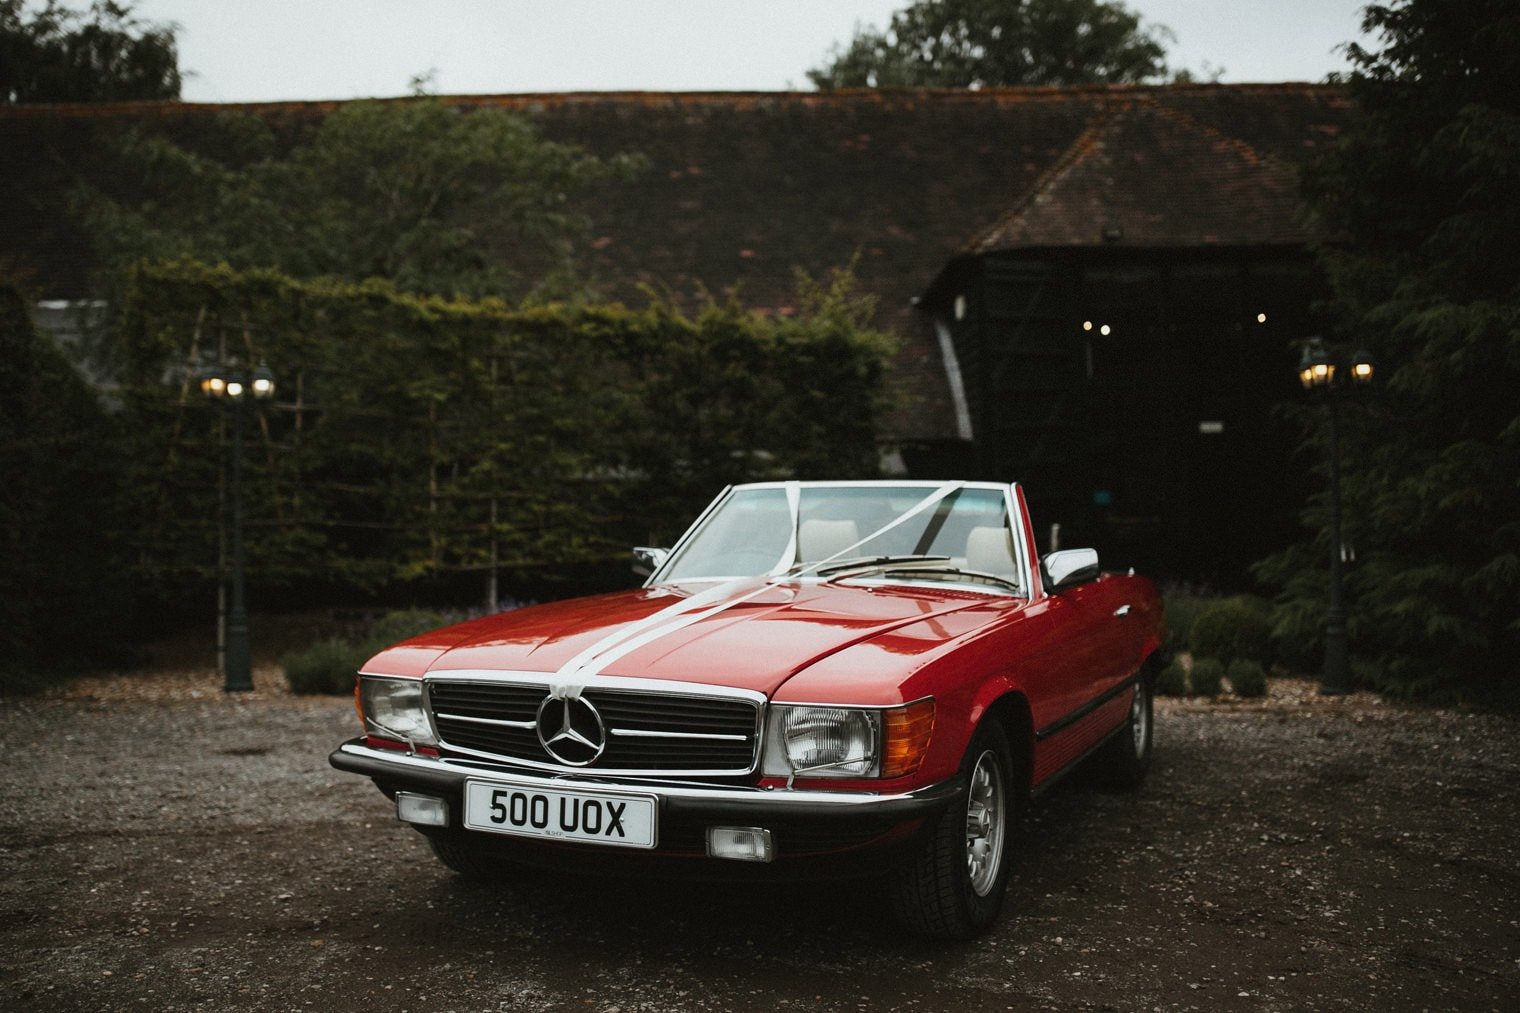 Vintage red mercedes wedding car